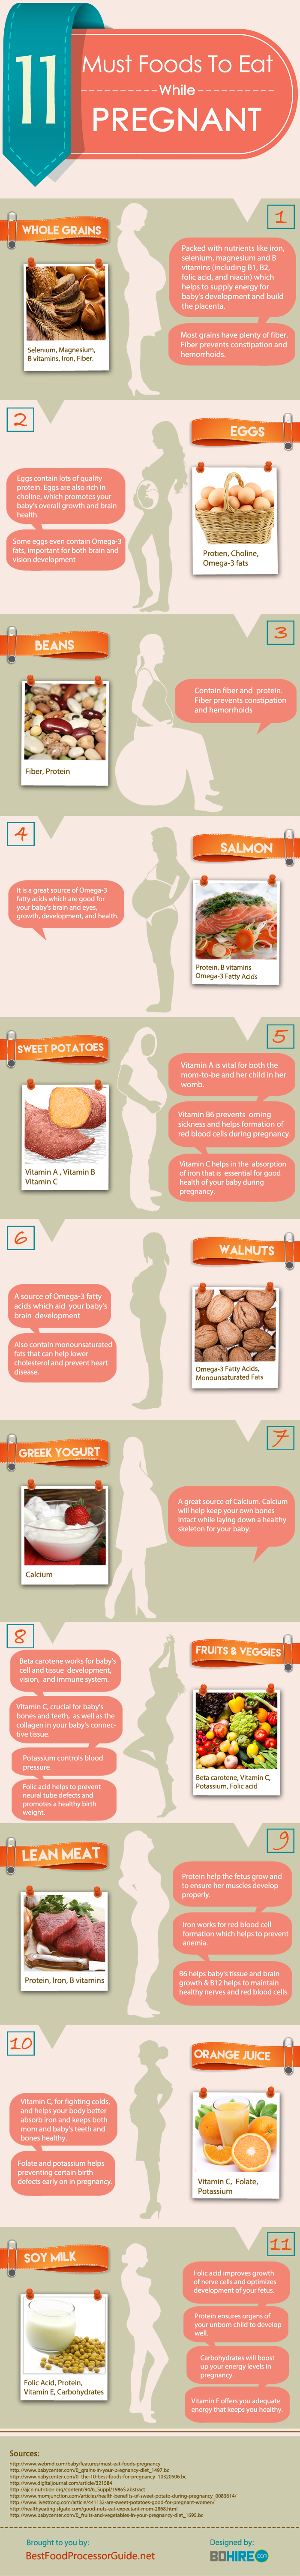 11 Must Foods To Eat While Pregnant